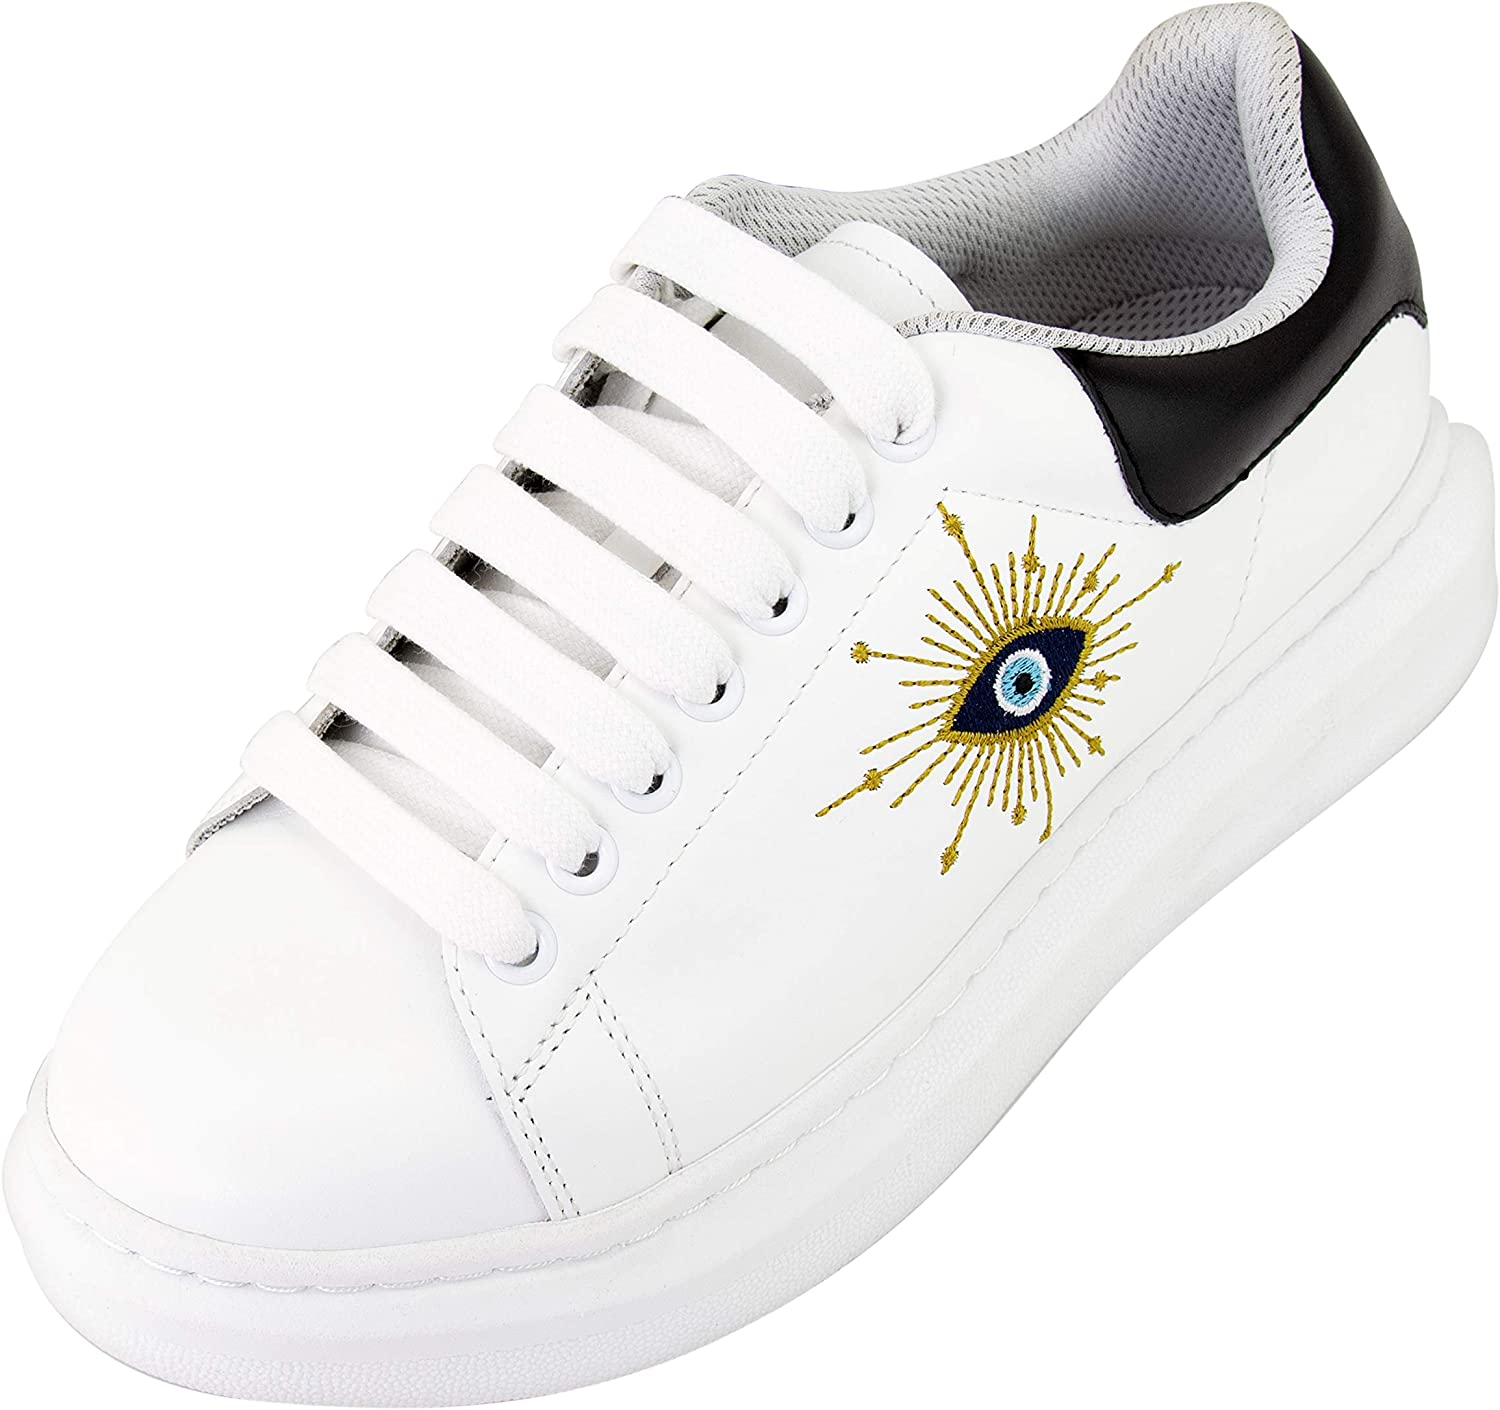 CHI Graphene Ultra-Cheap Deals Fashion Sneakers with hand-stitched Financial sales sale embroidery of t